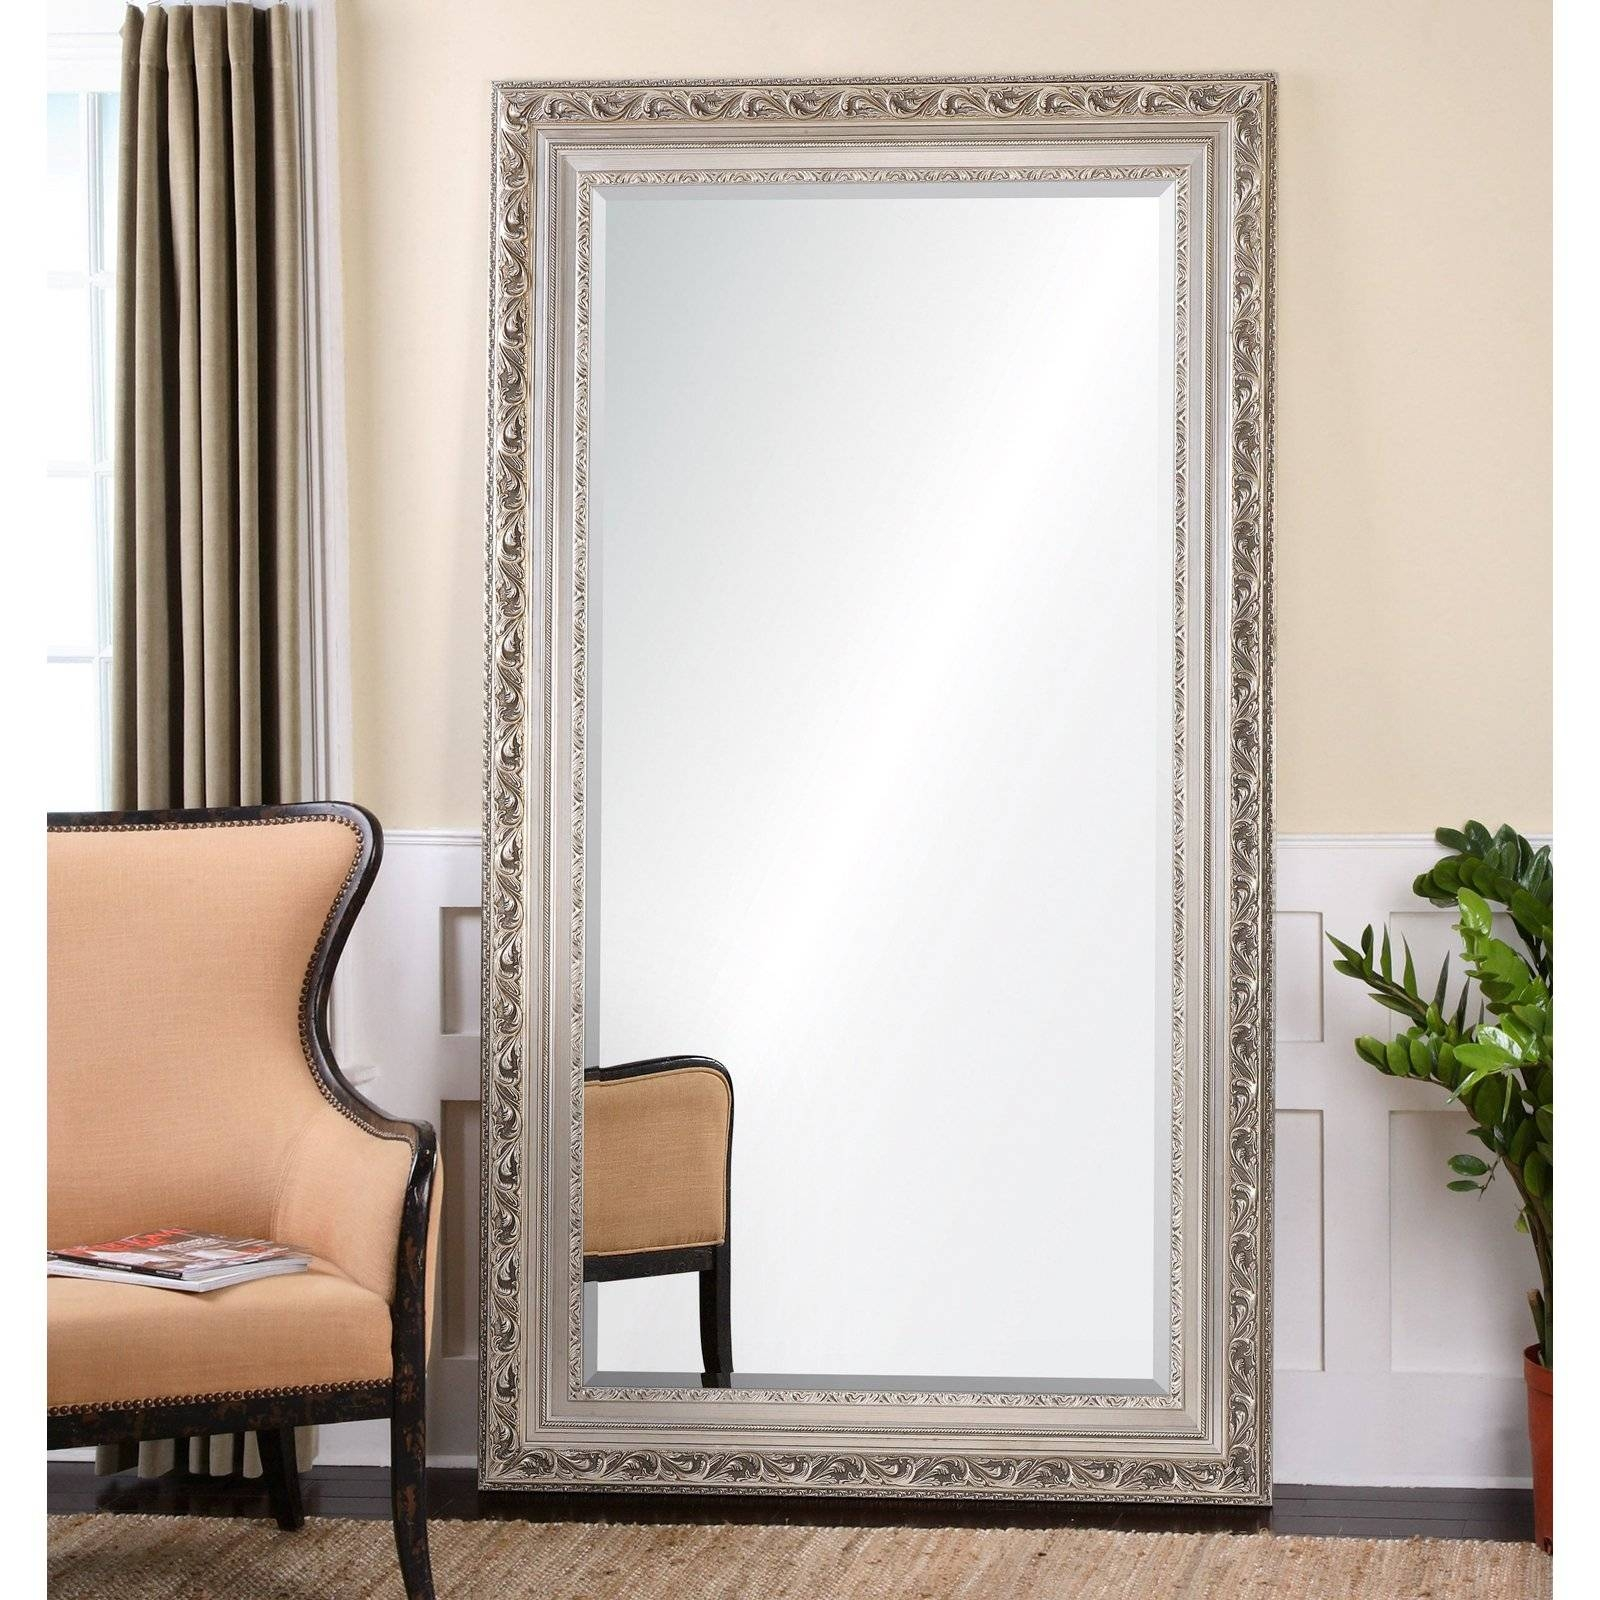 Large Wall Mirrors For Sale Cheap | Vanity Decoration throughout Cheap Mirrors (Image 13 of 15)